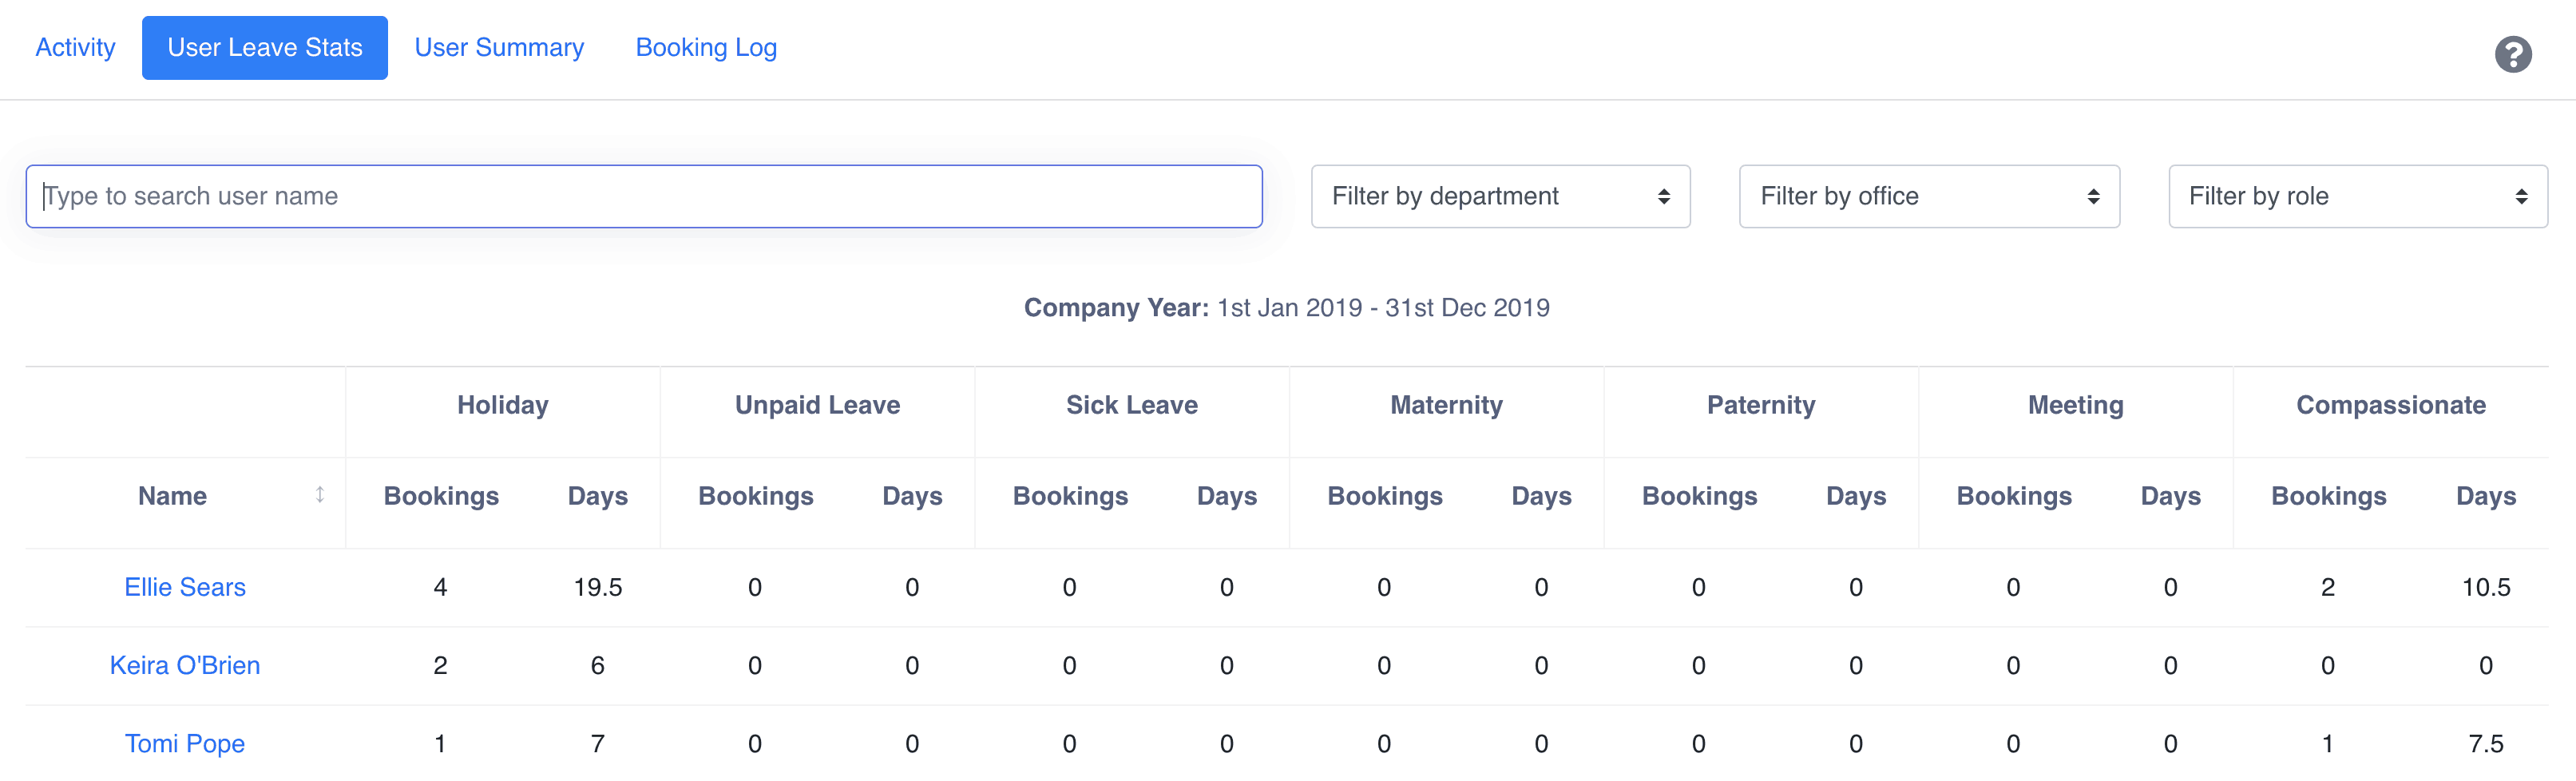 User Leave Stats Report